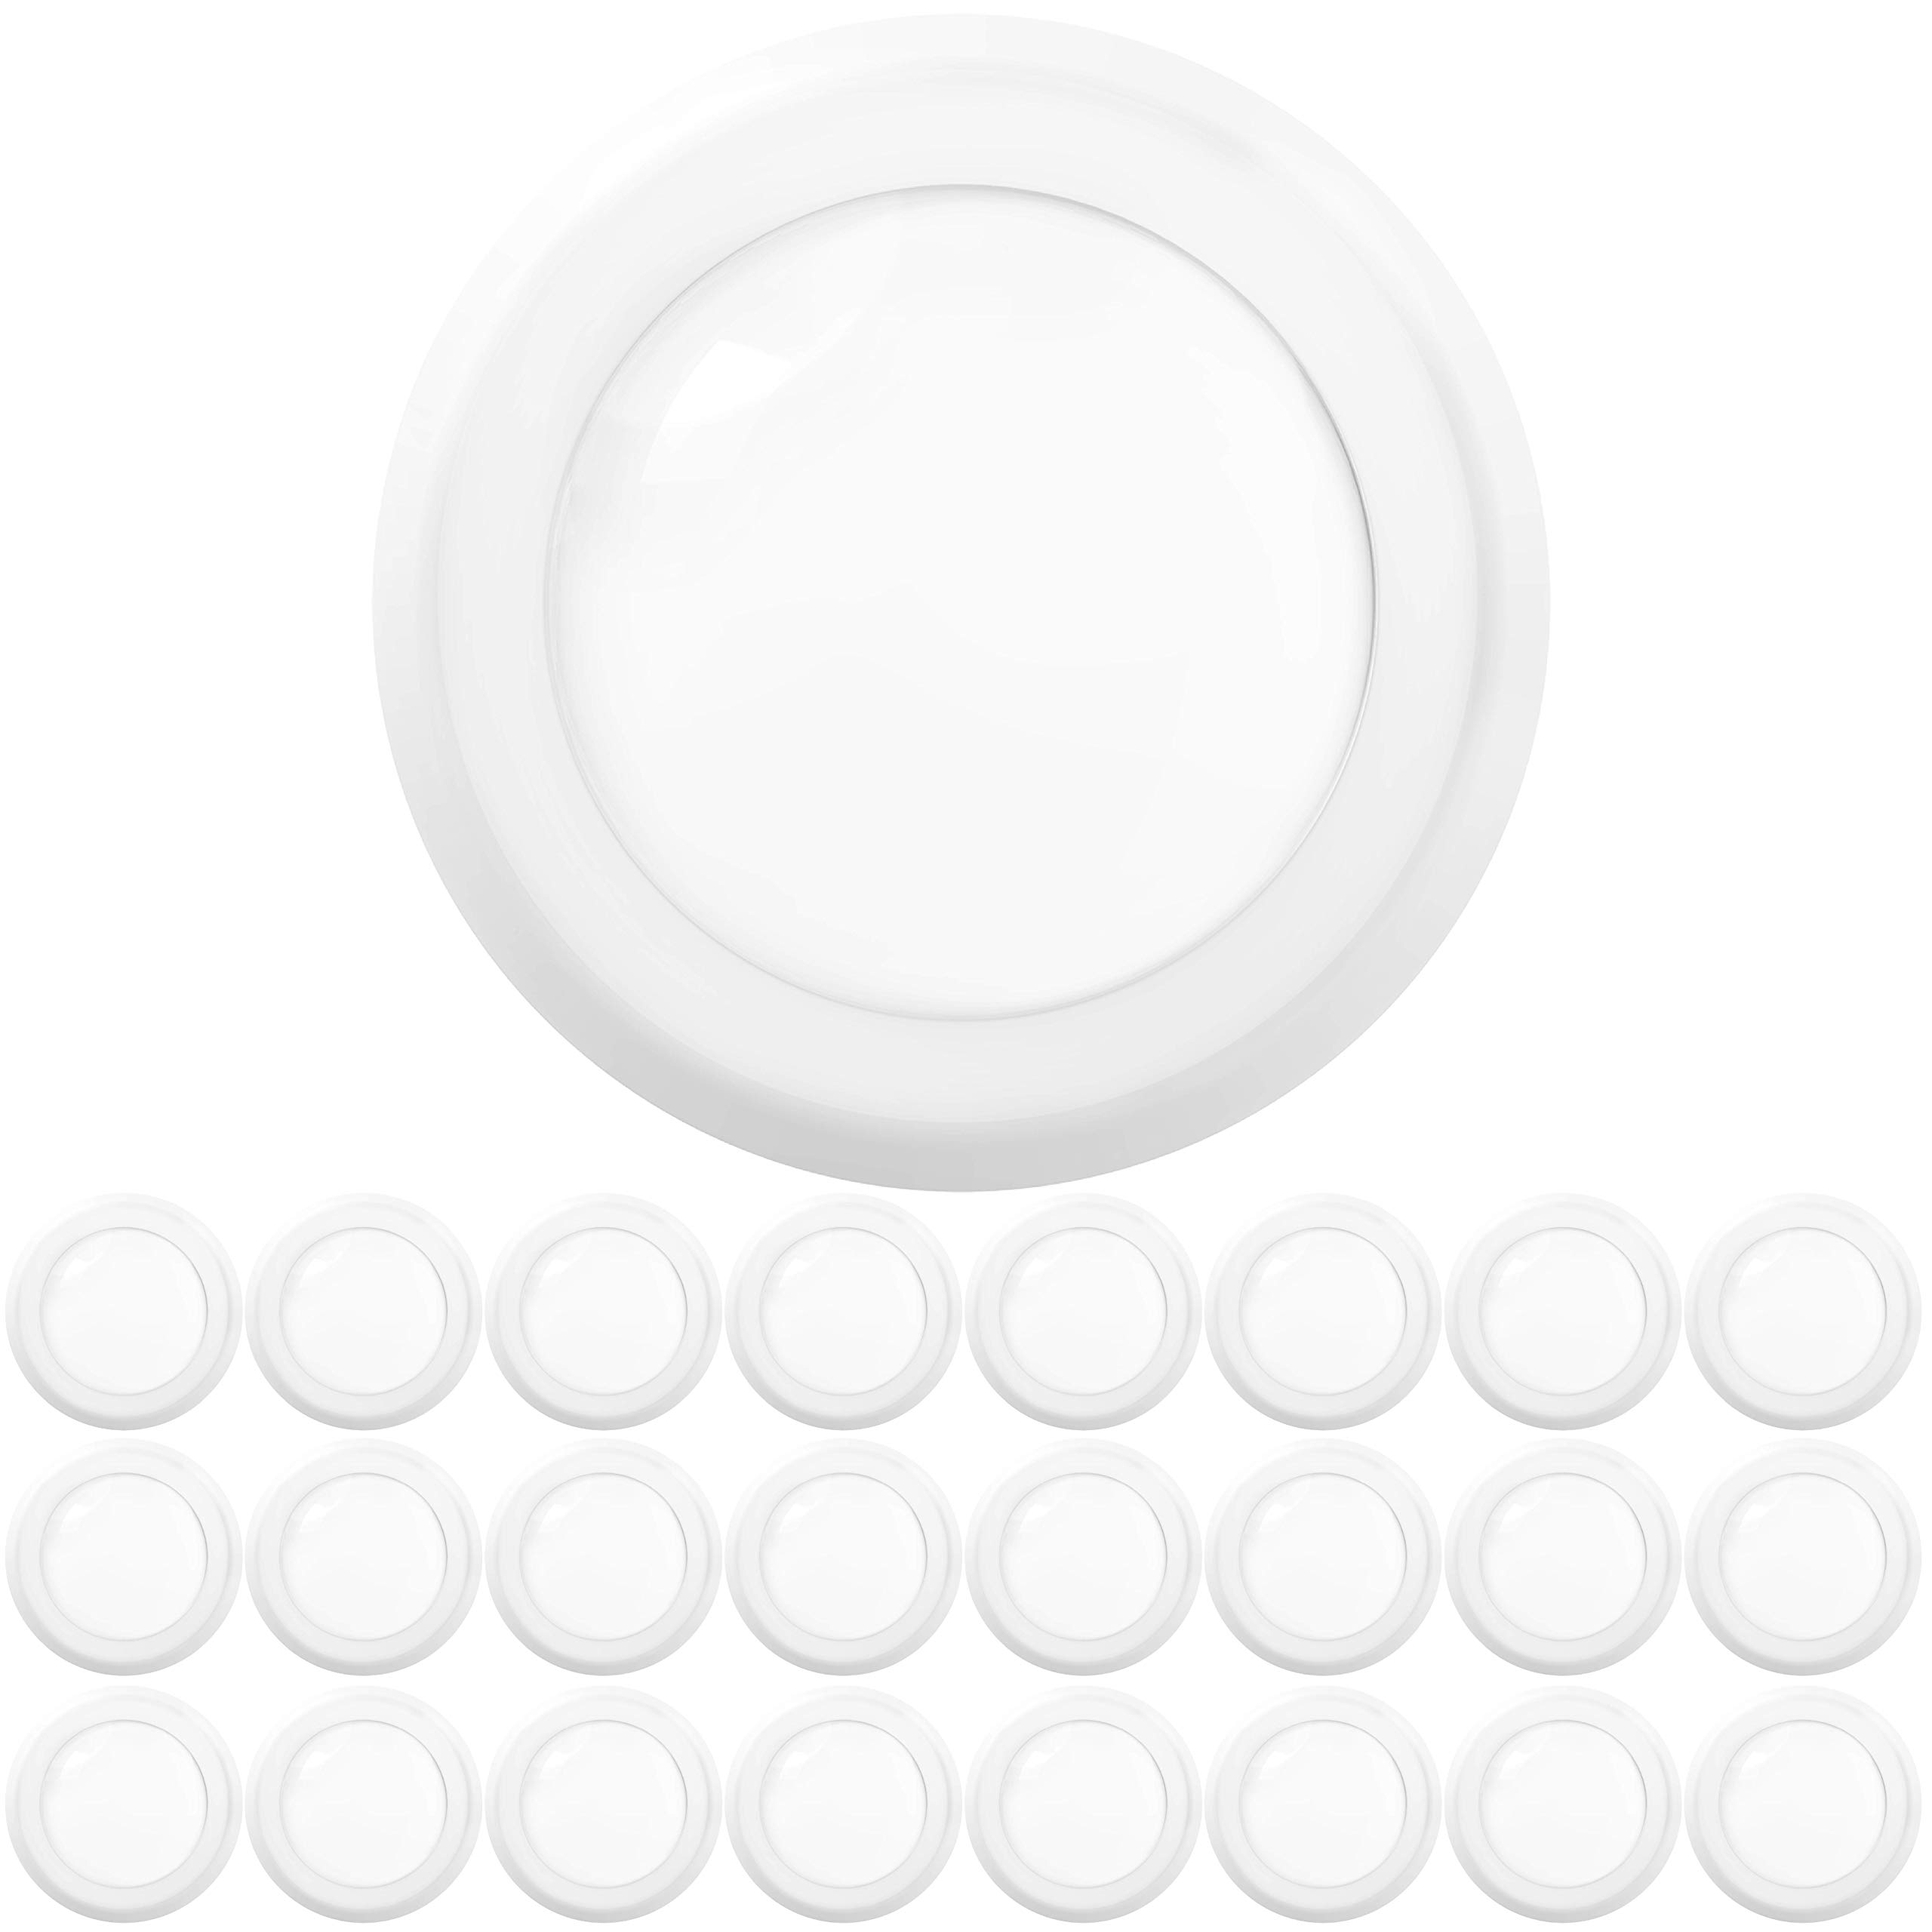 """Sunco Lighting 24 Pack 5 Inch / 6 Inch Flush Mount Disk LED Downlight, 12W=75W, 6000K Daylight Deluxe, 850 LM, Dimmable, Hardwire 4/6"""" Junction Box, Recessed Retrofit Ceiling Fixture"""